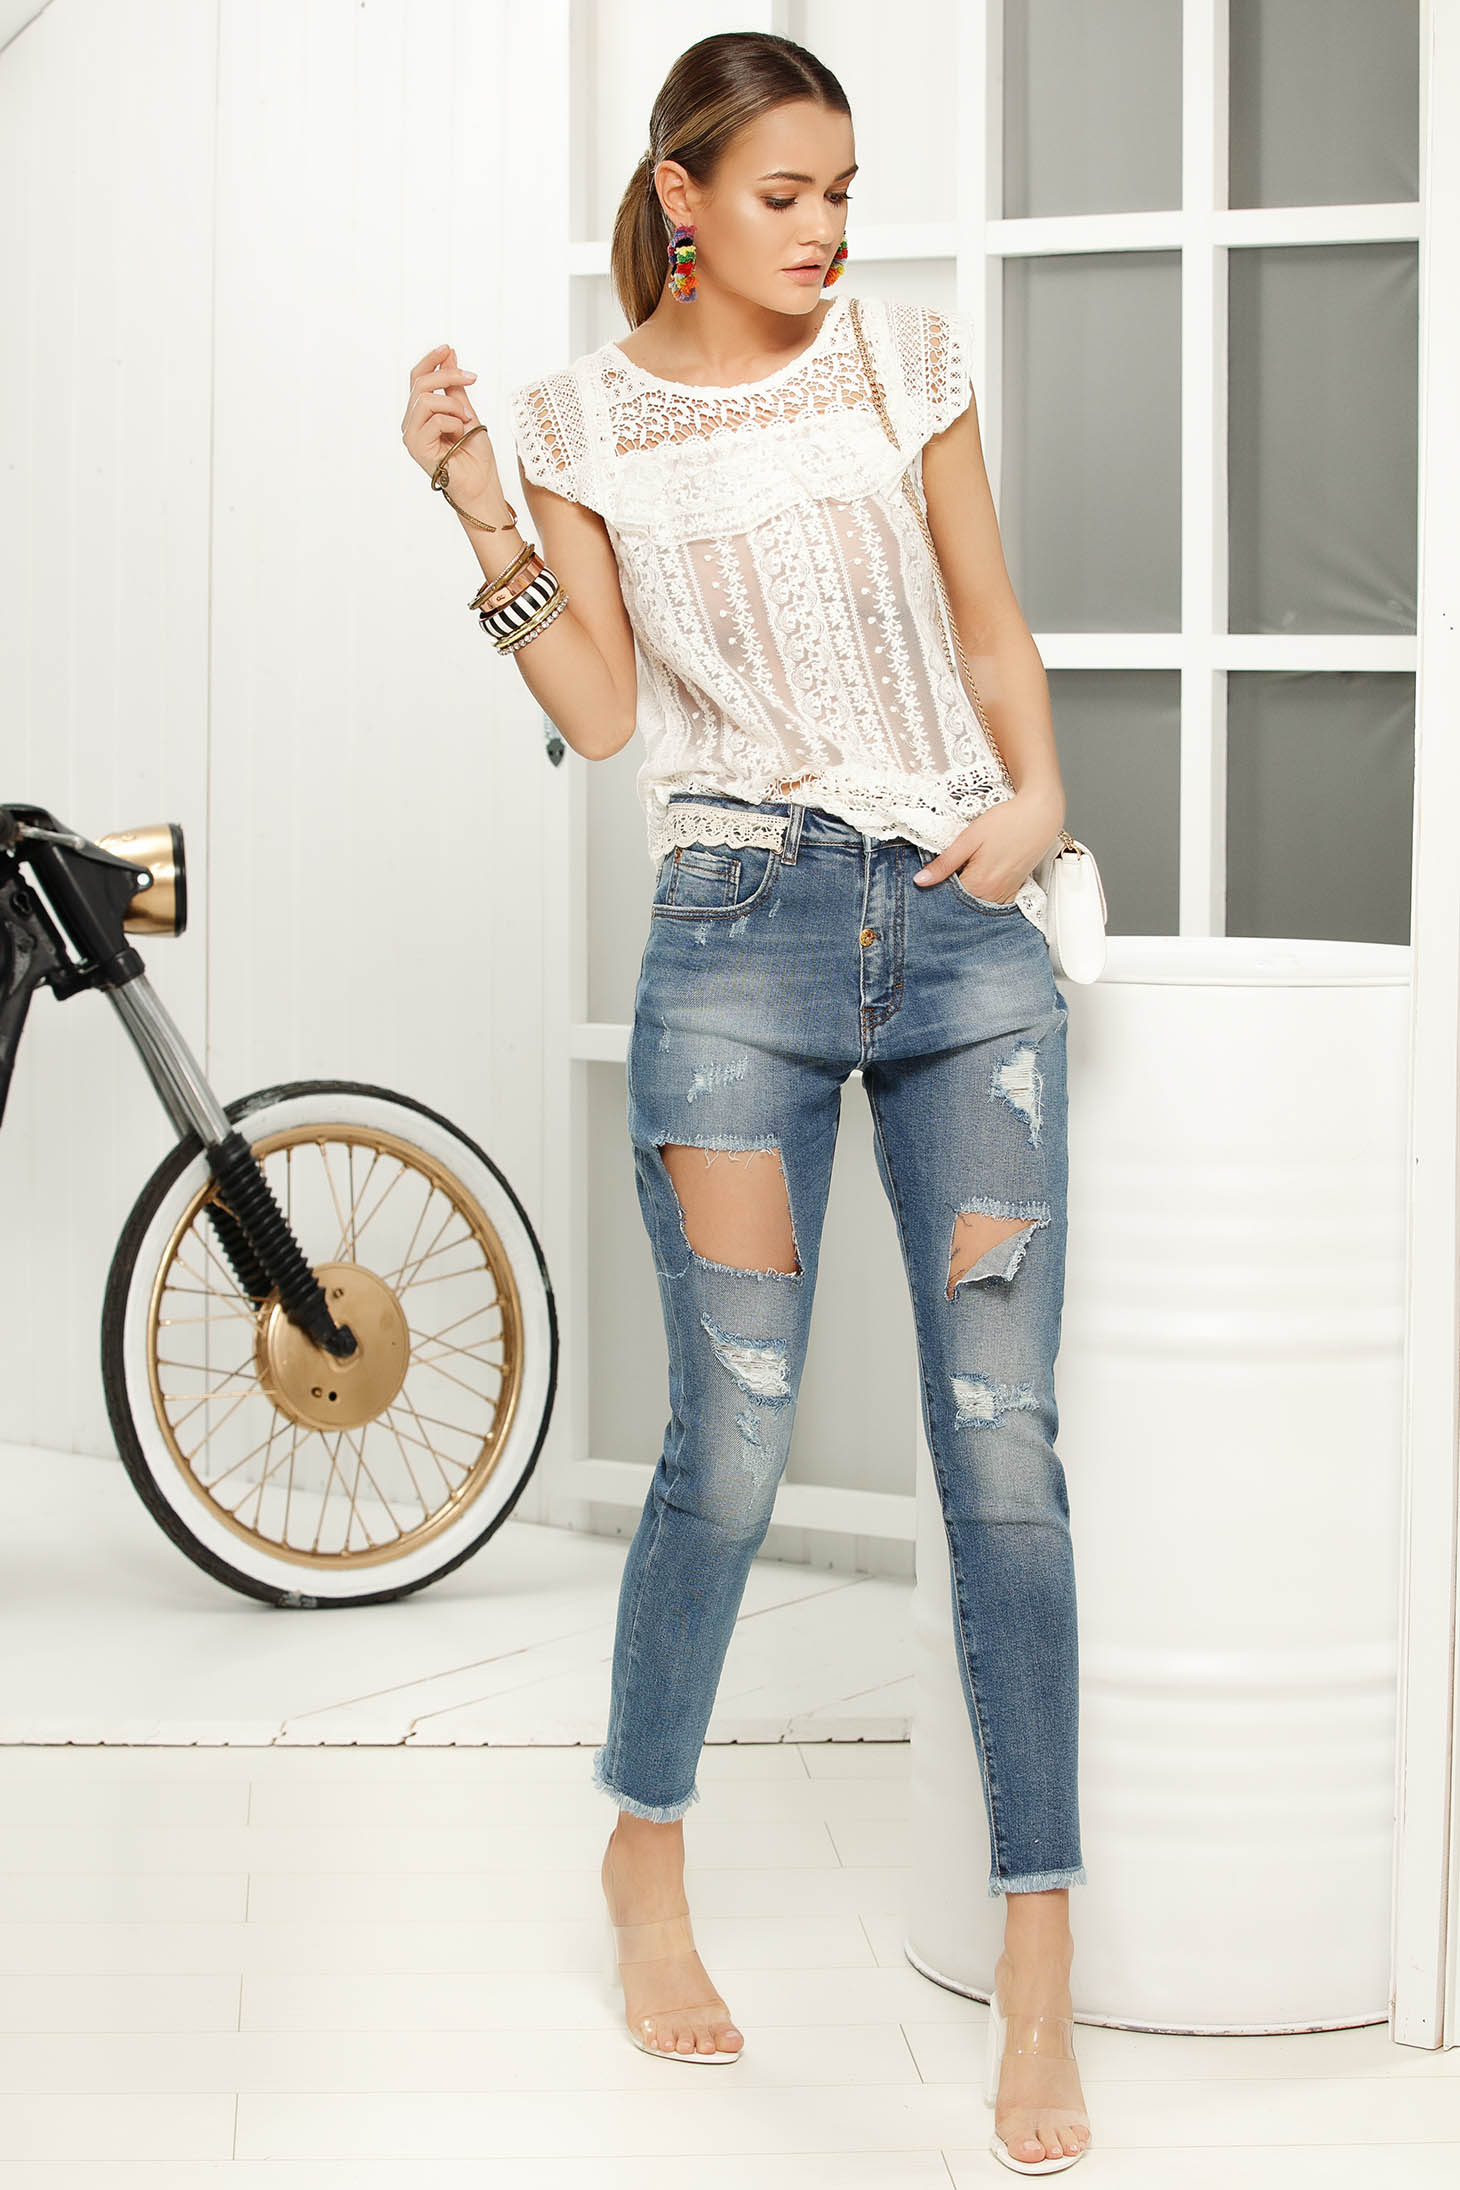 Blue skinny jeans jeans with ruptures with medium waist slightly elastic cotton with lace details